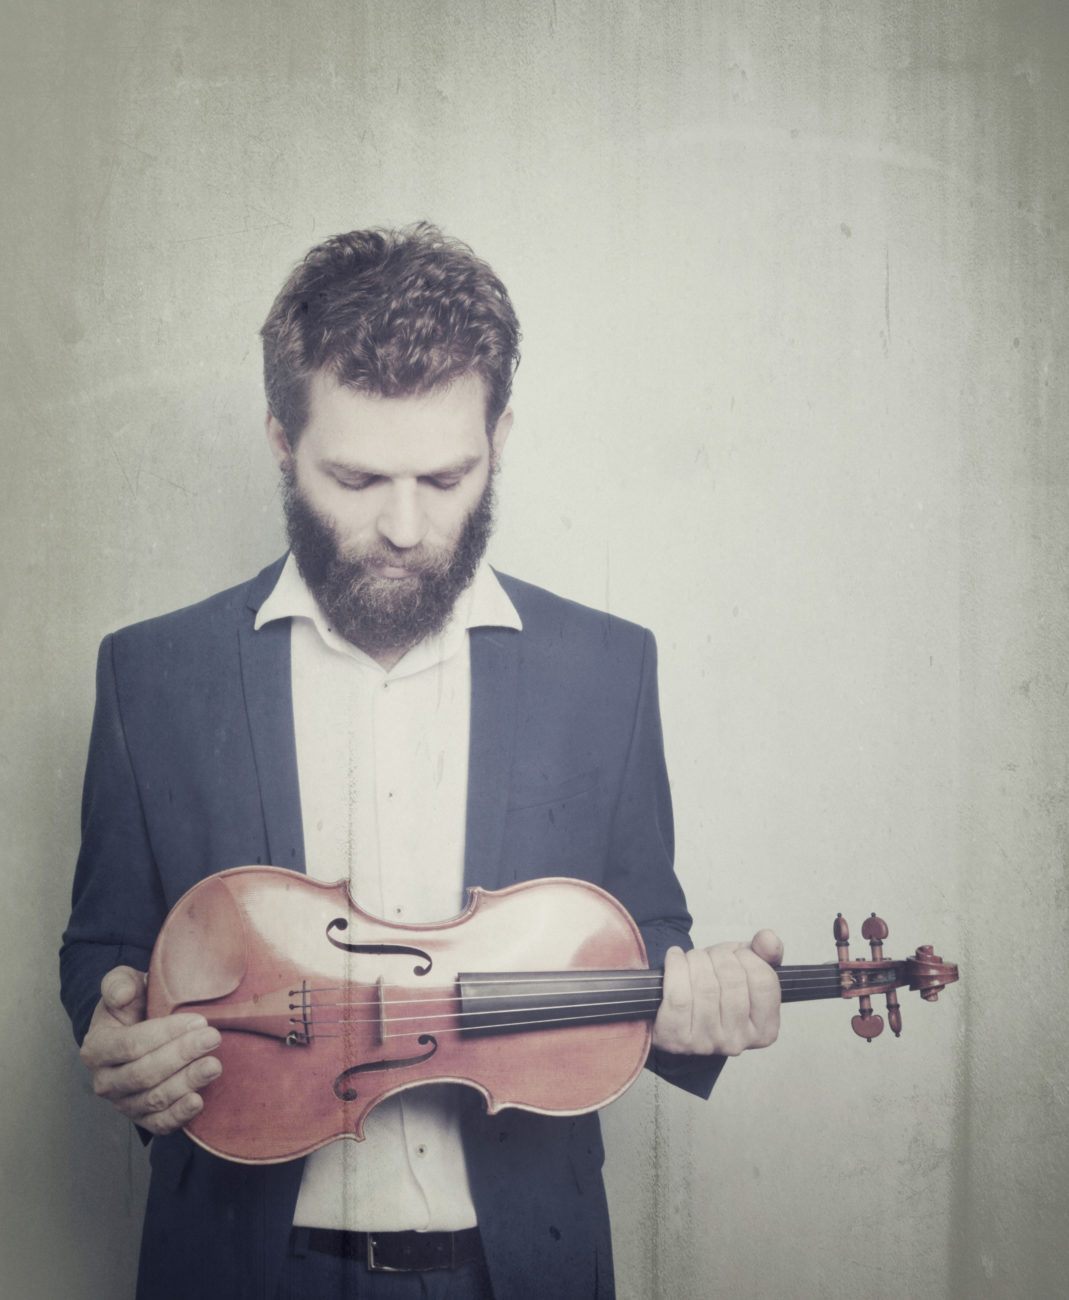 Johnny Gandelsman, a thin white man with brown hair and beard looks down at a violin which he holds in both hands at his waist.